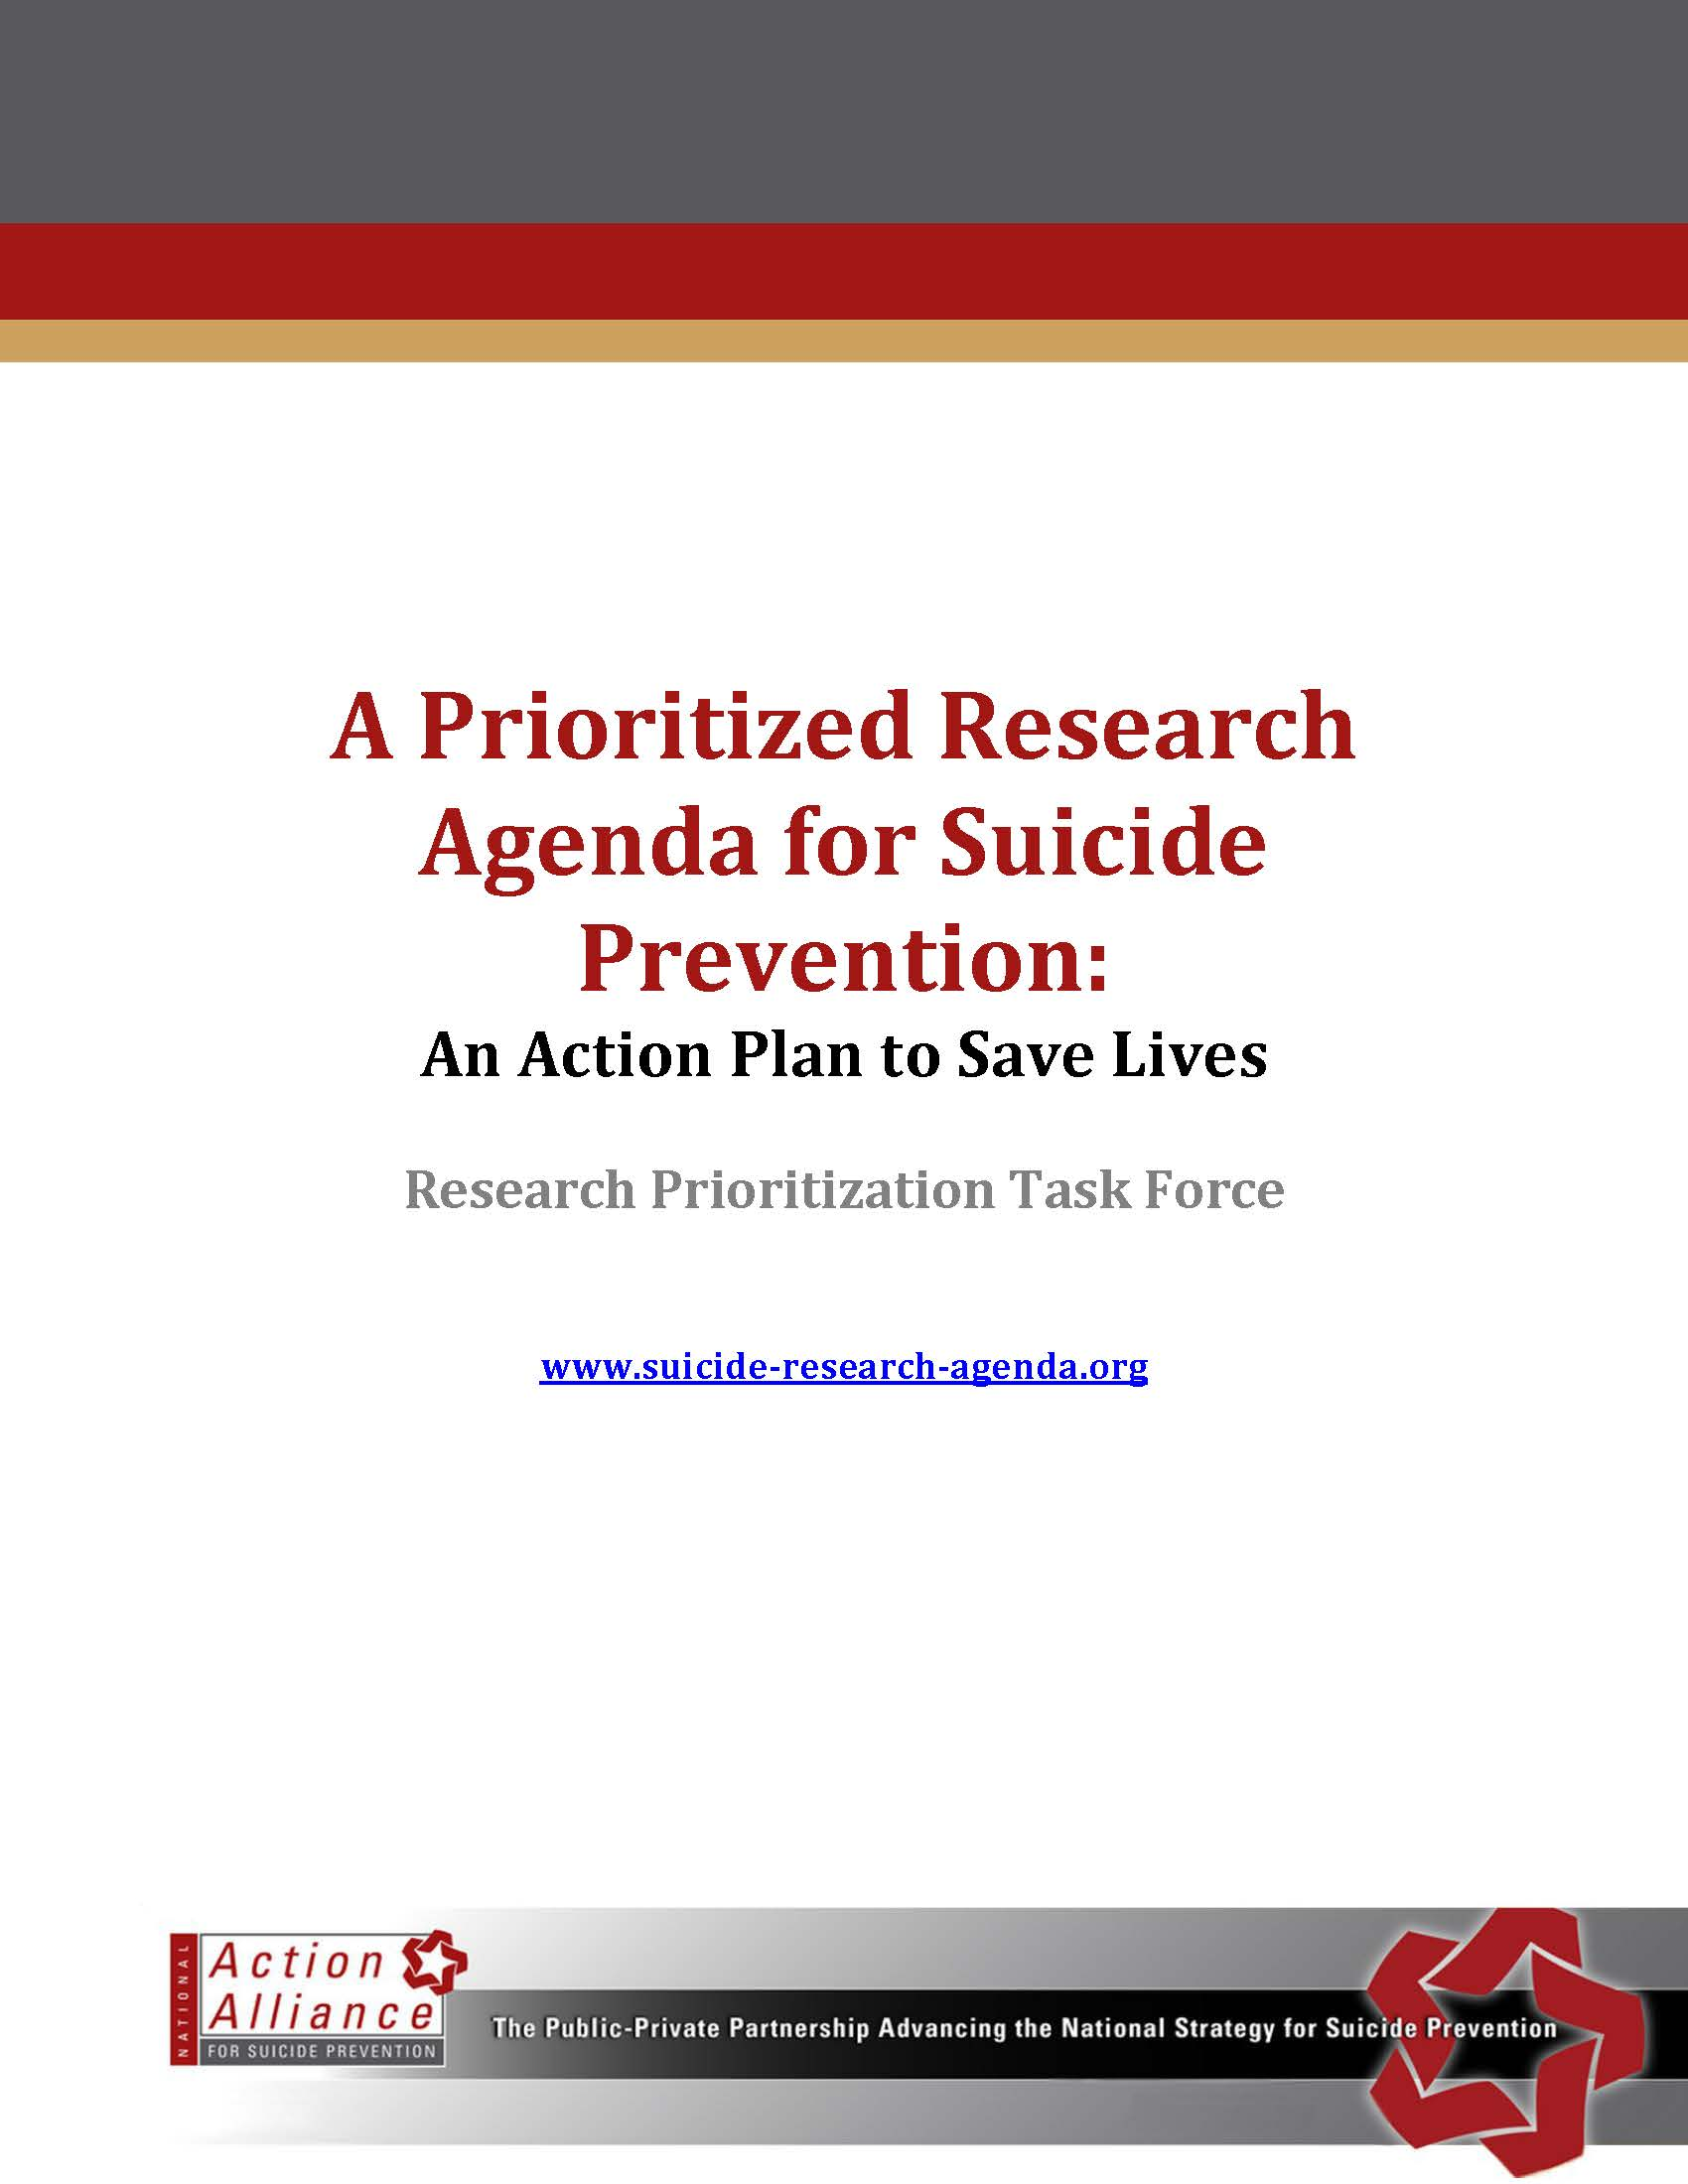 A Prioritized Research Agenda for Suicide Prevention: An Action Plan to Save Lives